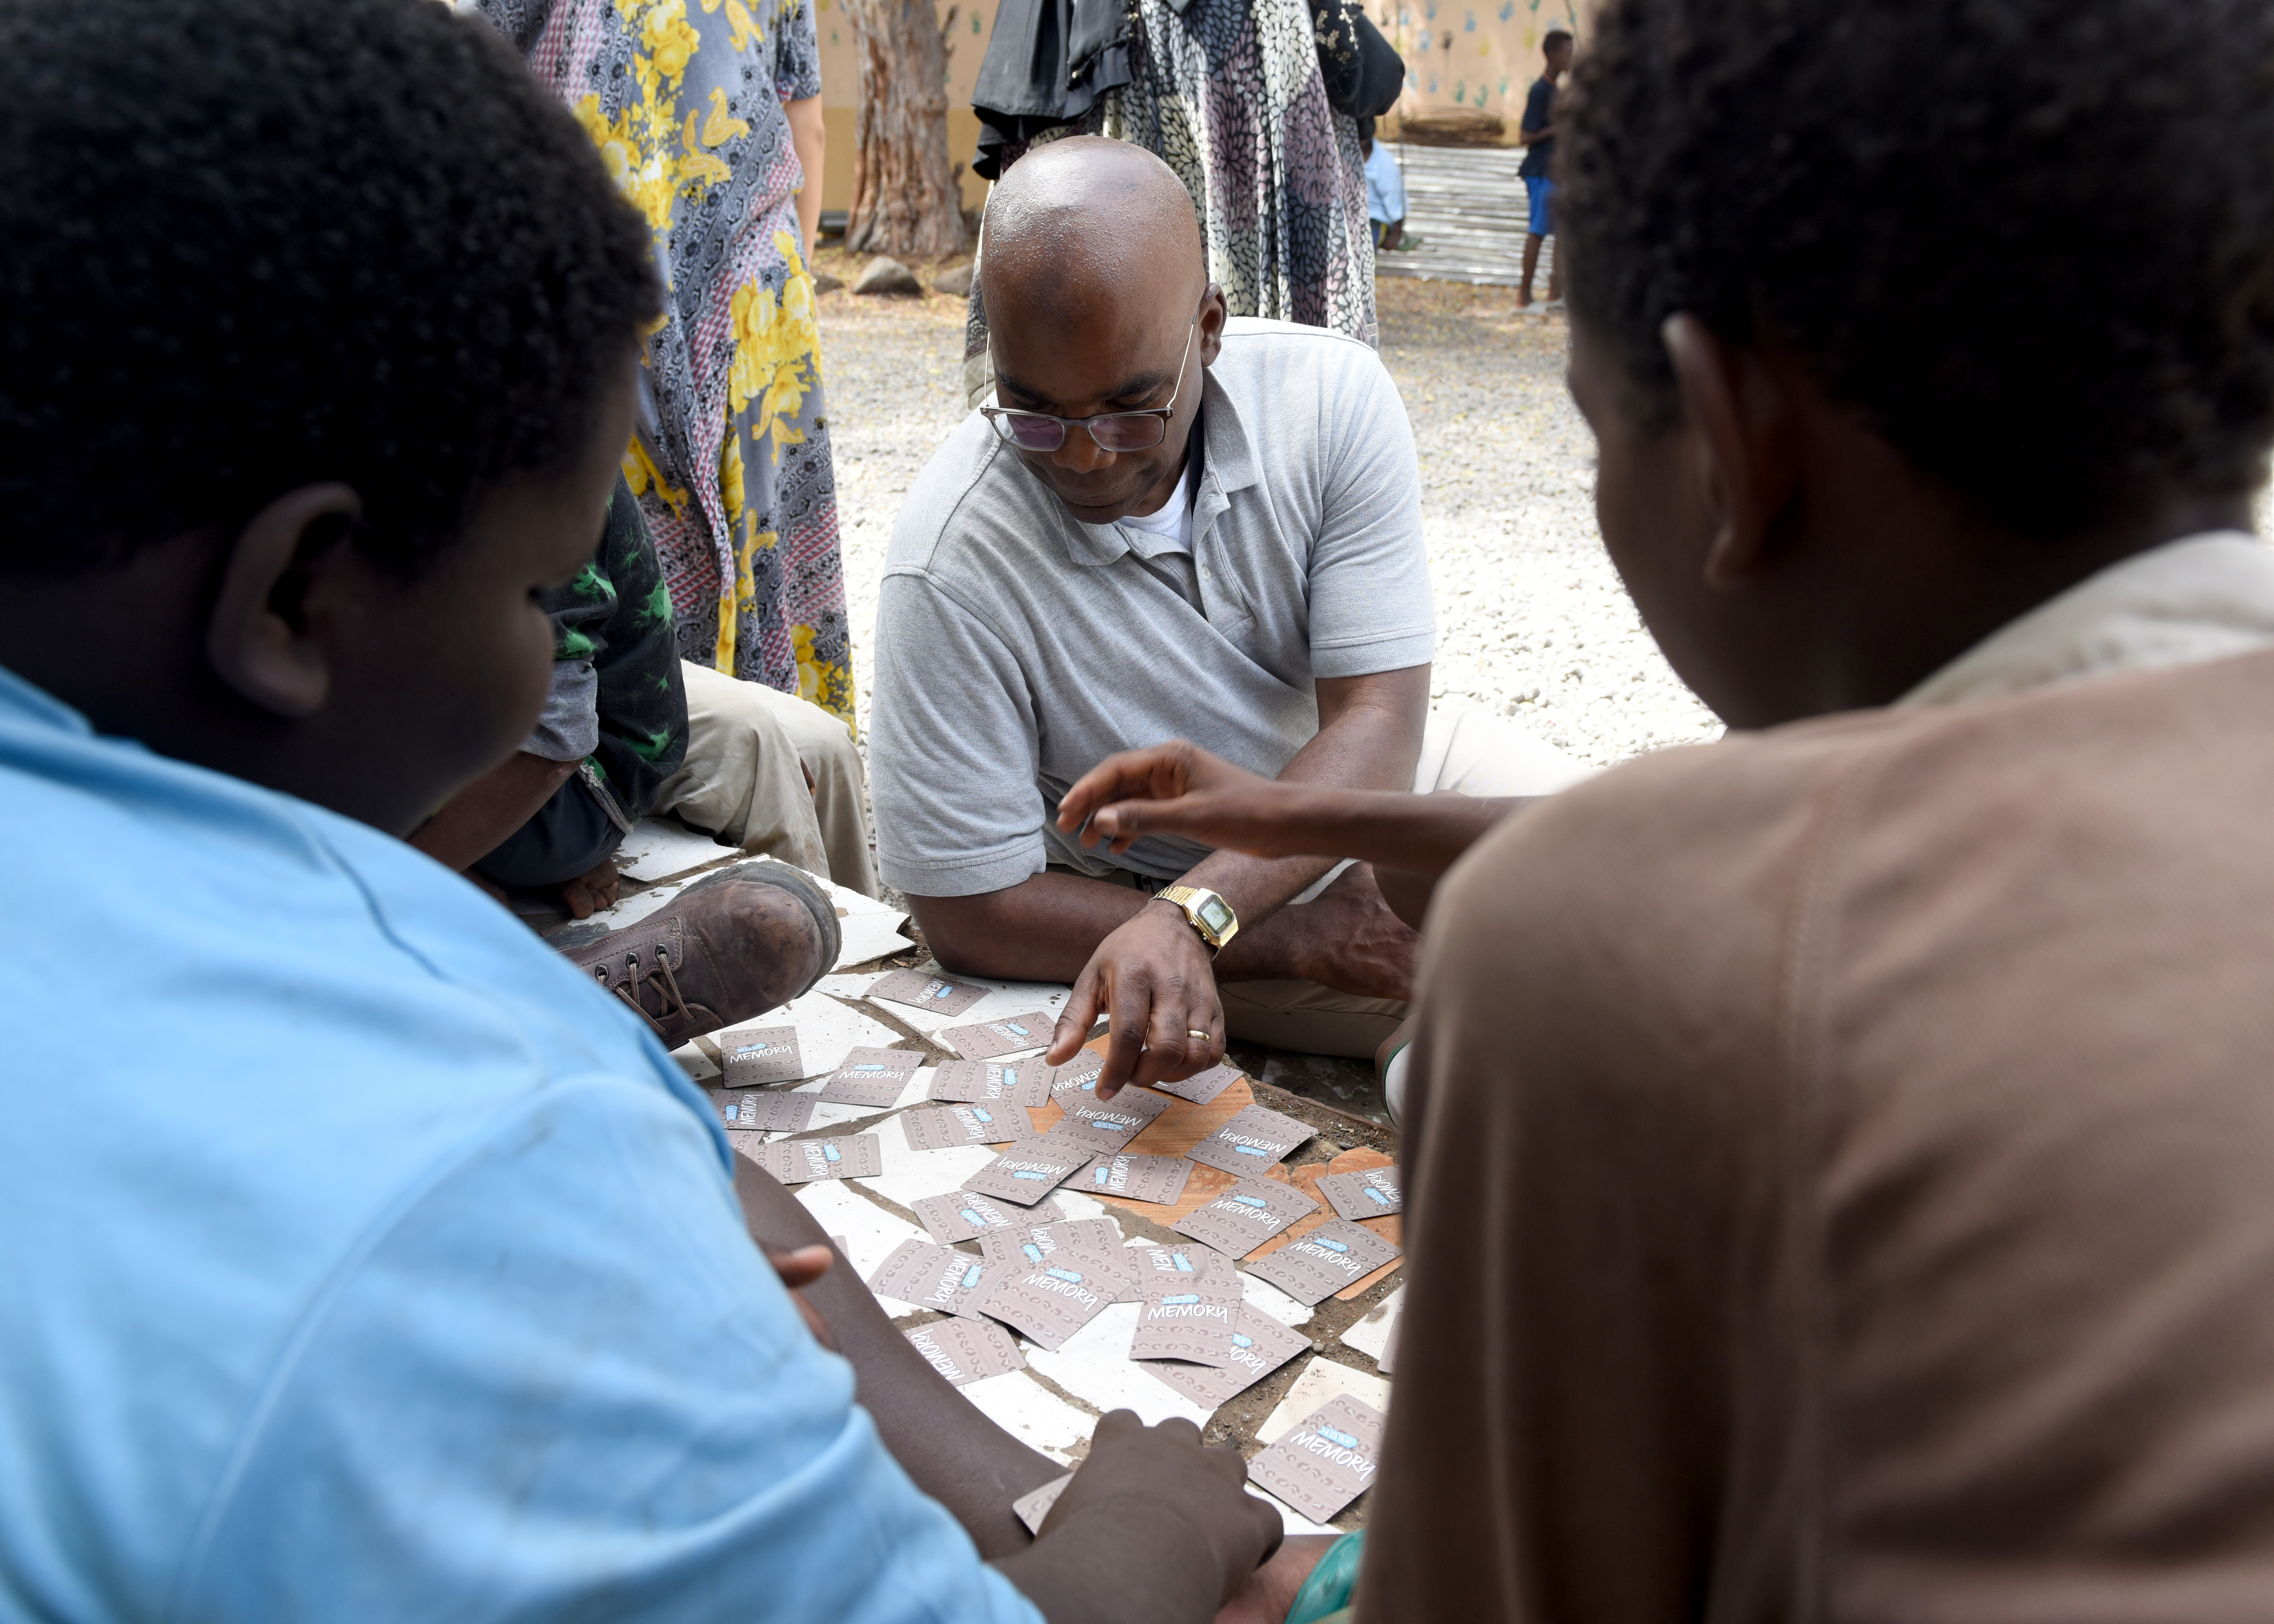 U.S. Army Col. Paul Minor, chaplain with the Massachusetts National Guard, plays a card matching game with children at Caritas in Djibouti City, Djibouti, while visiting Combined Joint Task Force-Horn of Africa (CJTF-HOA), April 25, 2019. CJTF-HOA enhances partner capabilities by providing bi-weekly assistance to Caritas, which is an international organization that was started in 1897 by the Catholic Church to provide relief to the world. (U.S. Air Force Photo by Staff Sgt. Franklin R. Ramos)